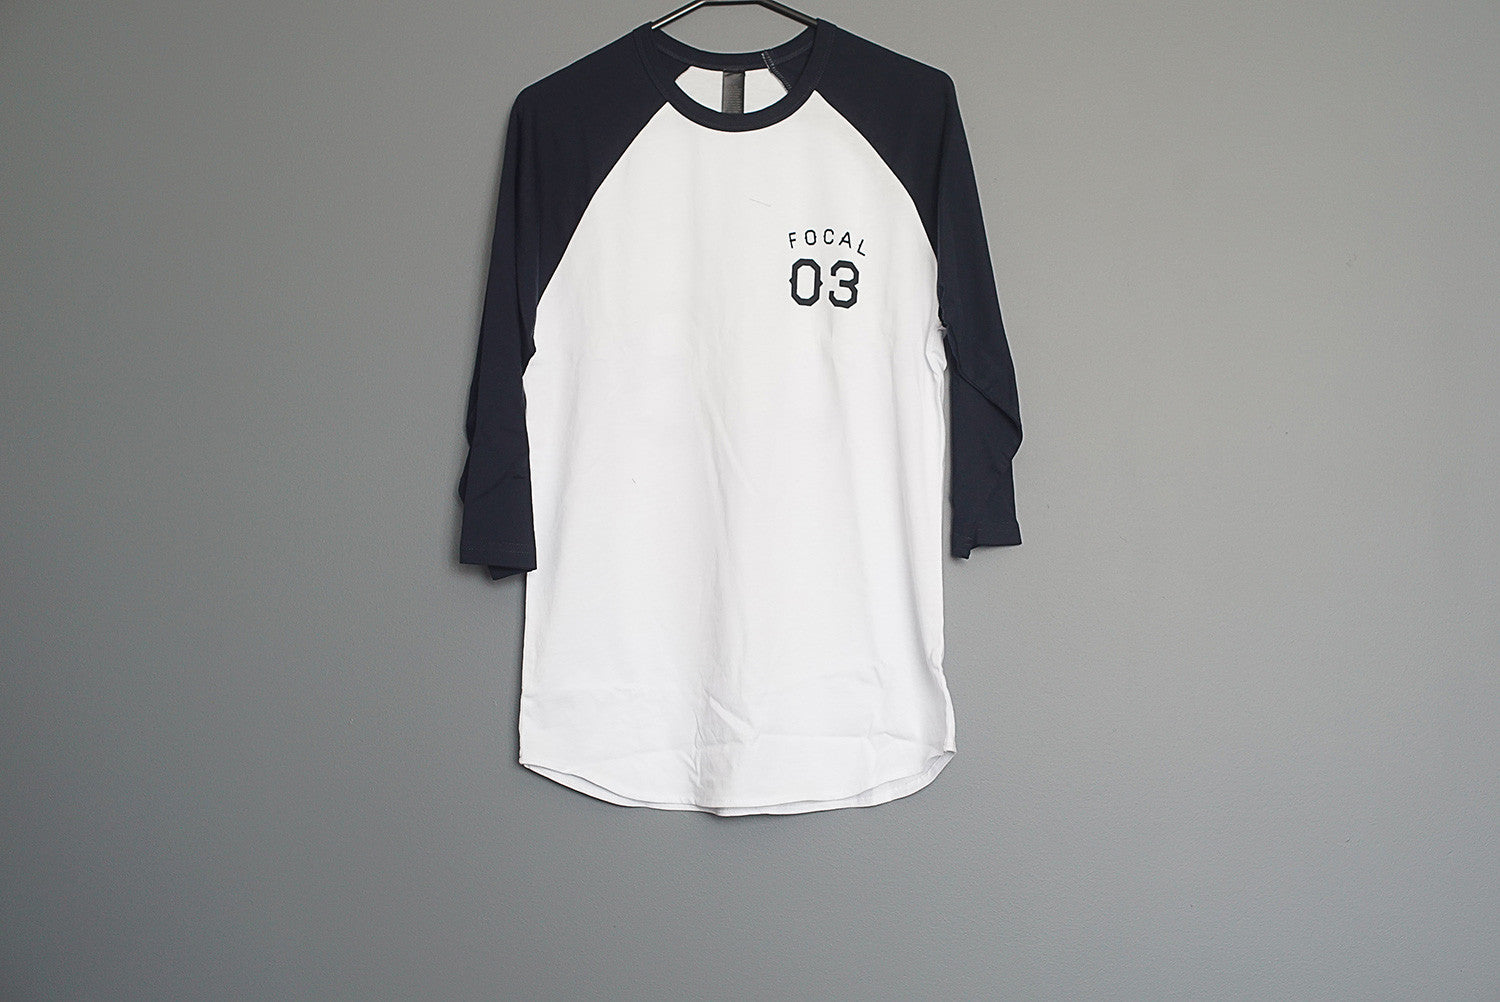 Focal 03 Raglan - White/Navy